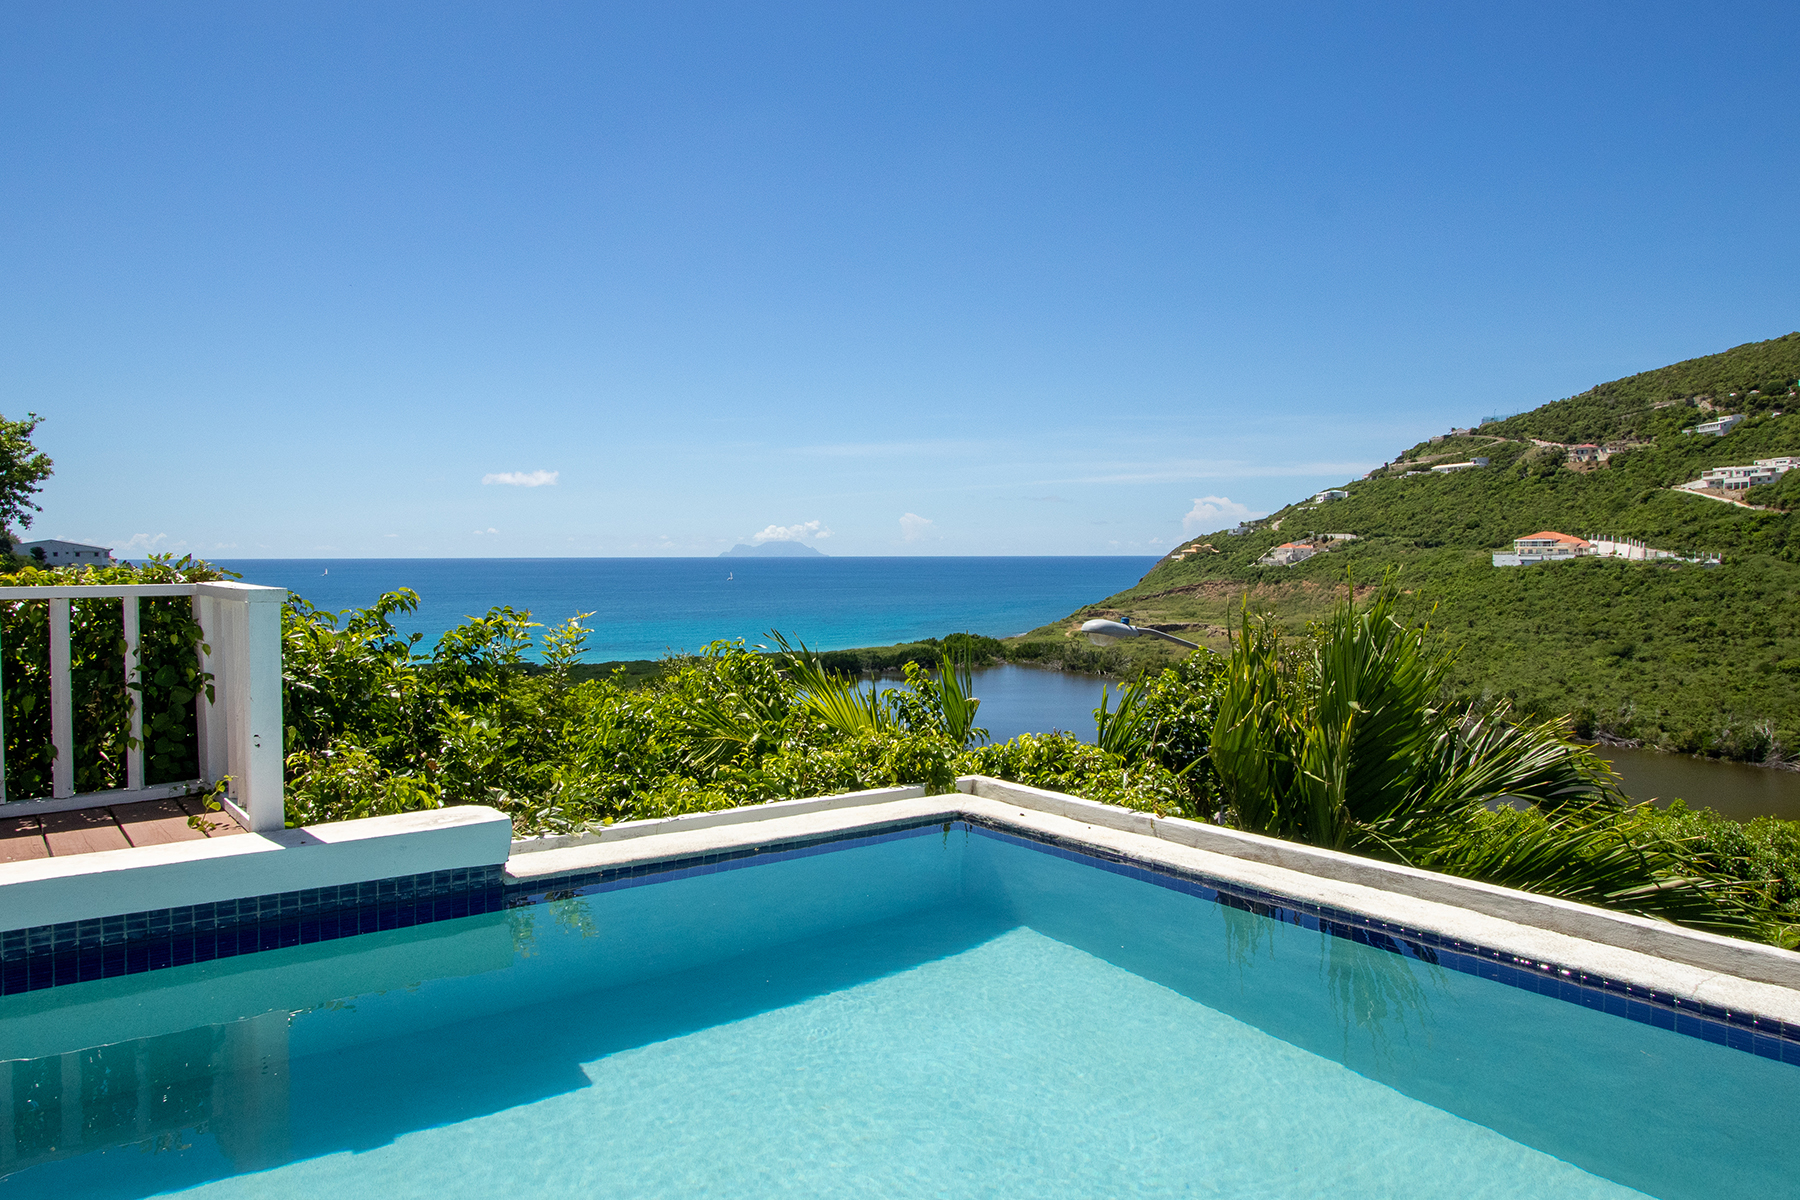 Single Family Homes for Sale at Villa La Dolce Vita Belair, Cities In Sint Maarten St. Maarten